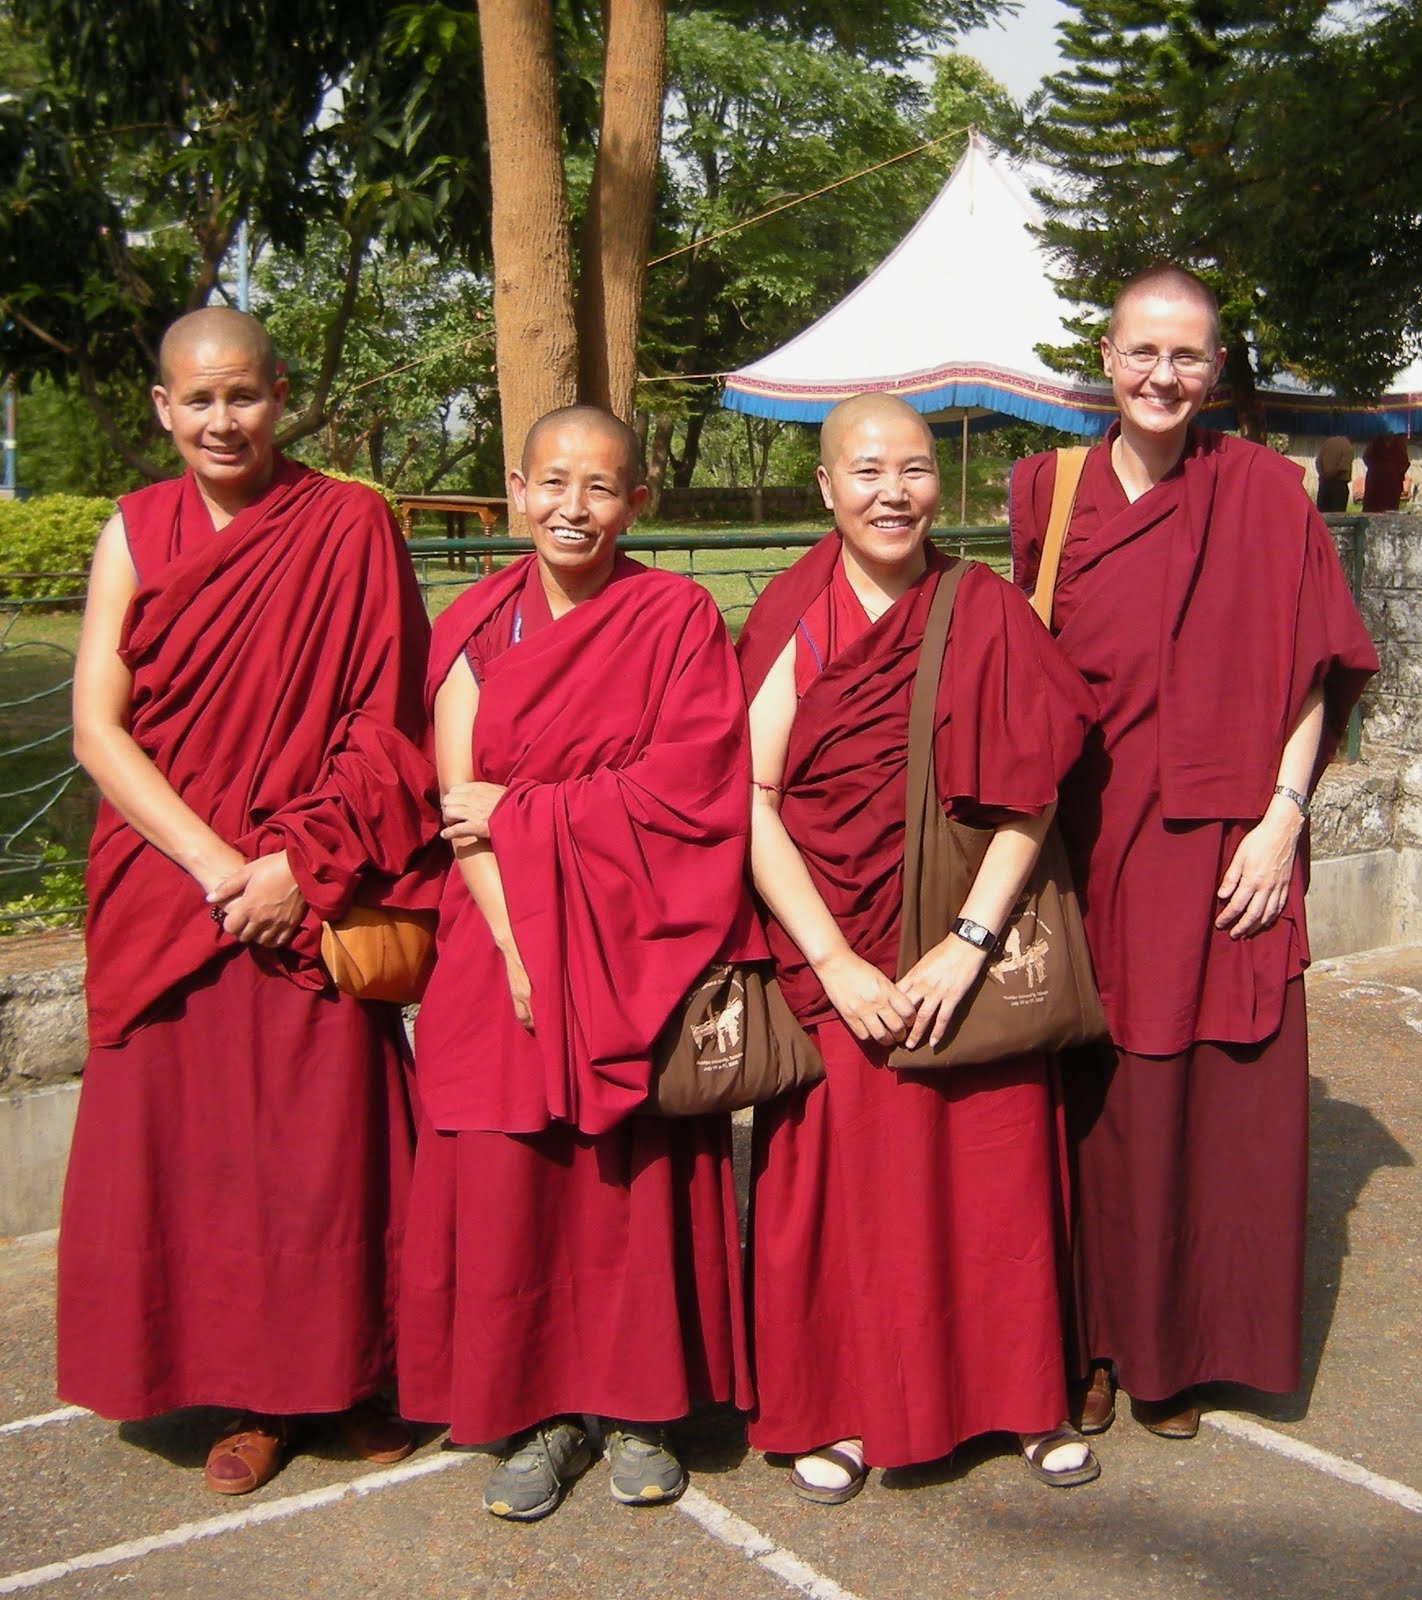 kayenta buddhist single men Why do buddhist monks wear orange robes and shave their heads.